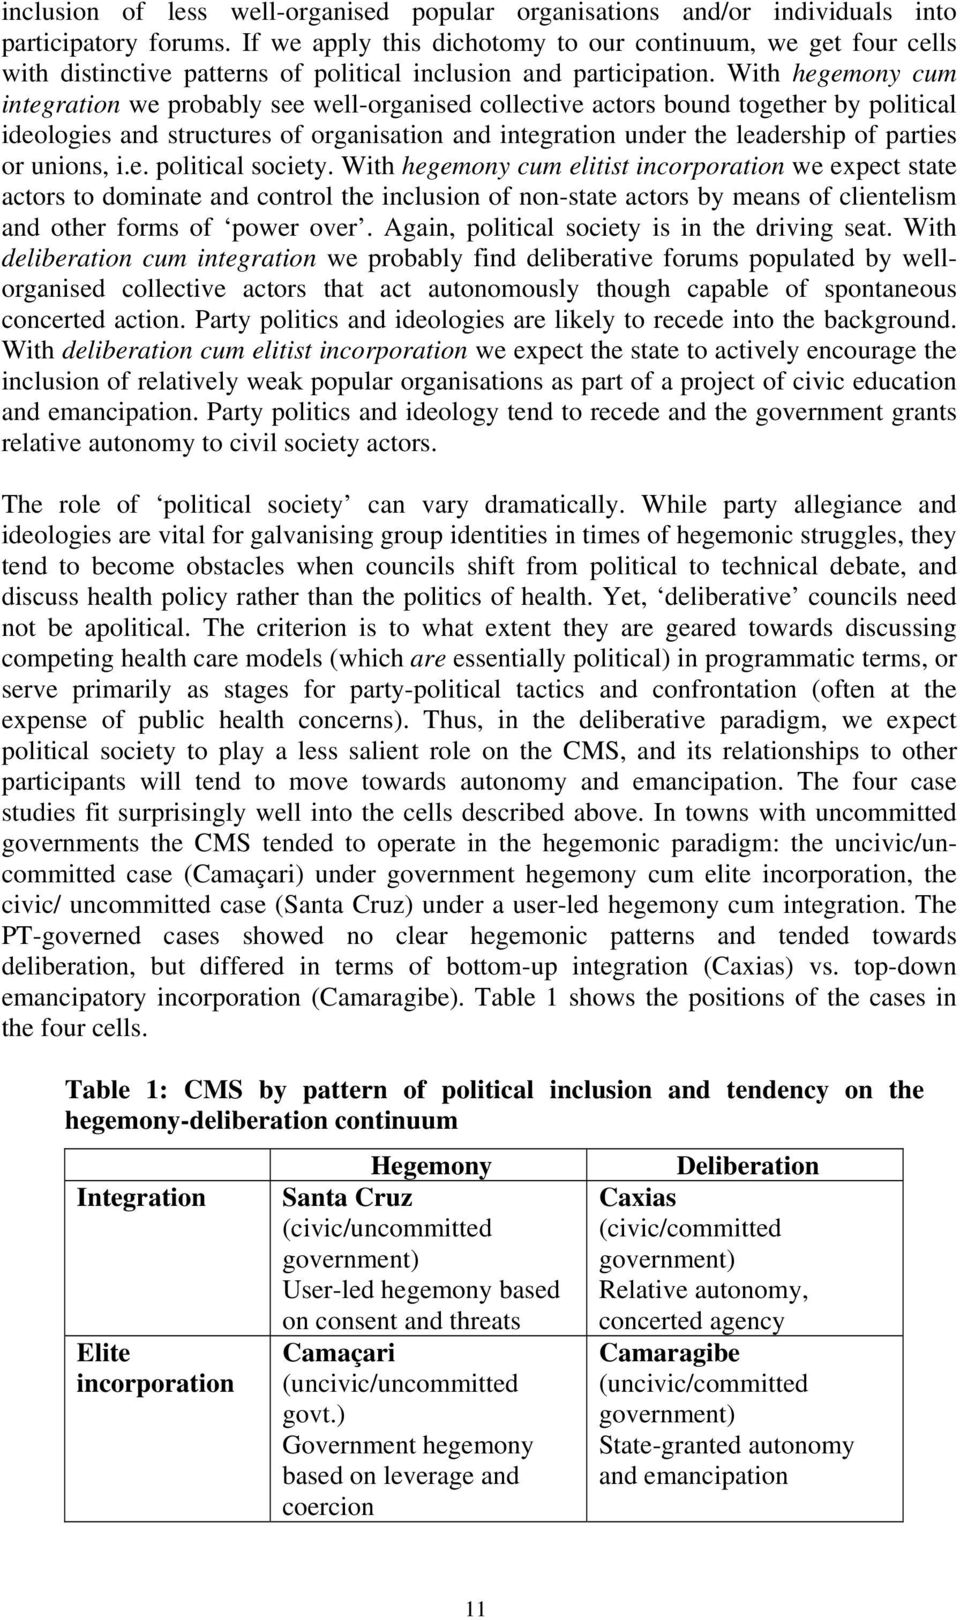 With hegemony cum integration we probably see well-organised collective actors bound together by political ideologies and structures of organisation and integration under the leadership of parties or